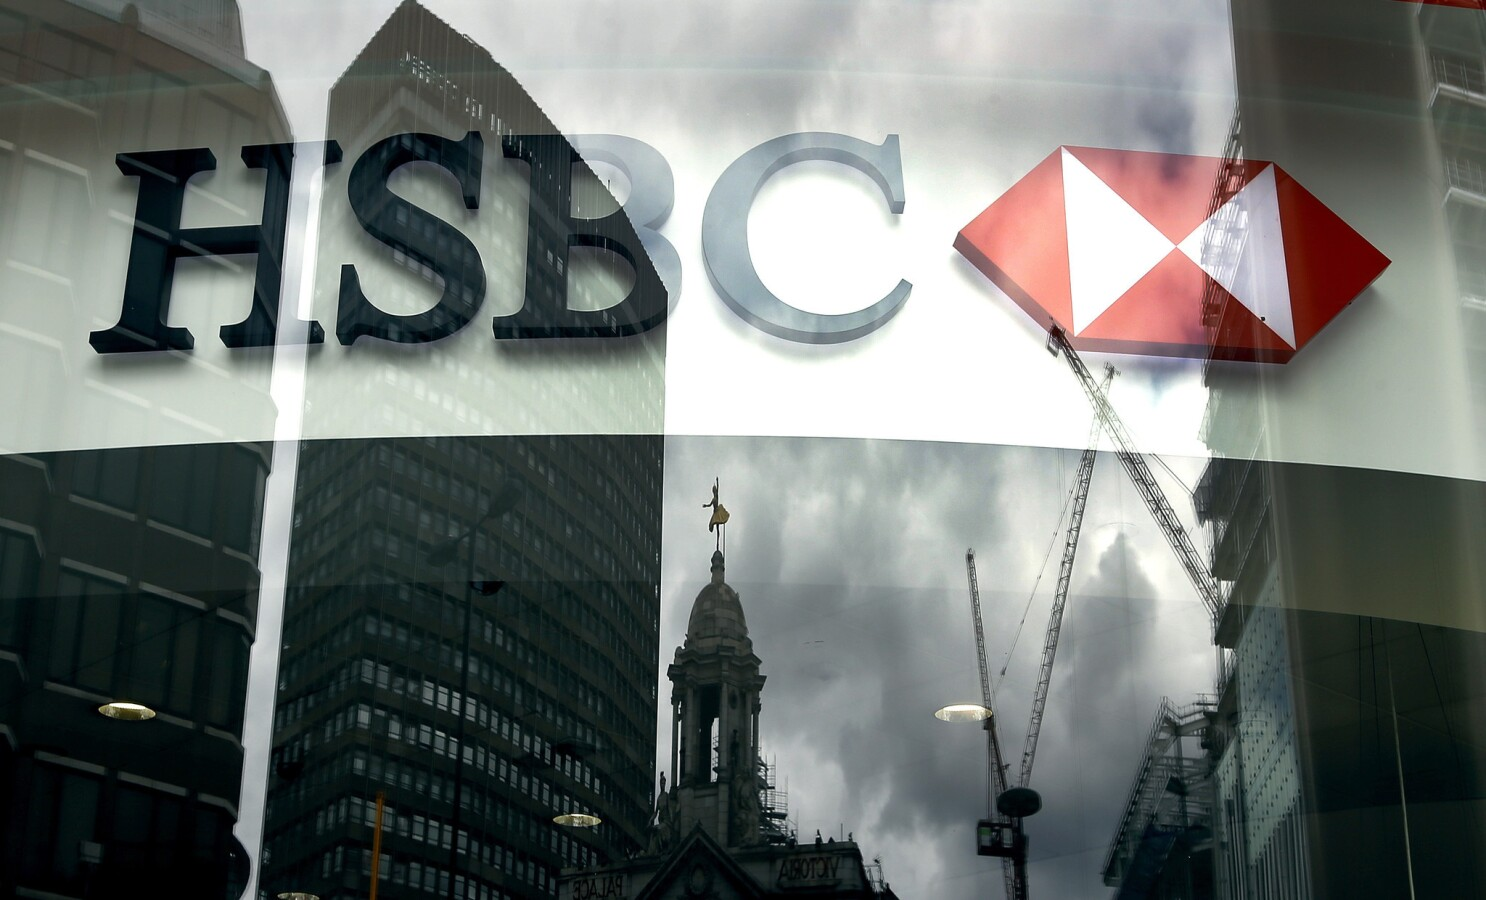 HSBC says its CEO to leave after just 18 months - The San Diego